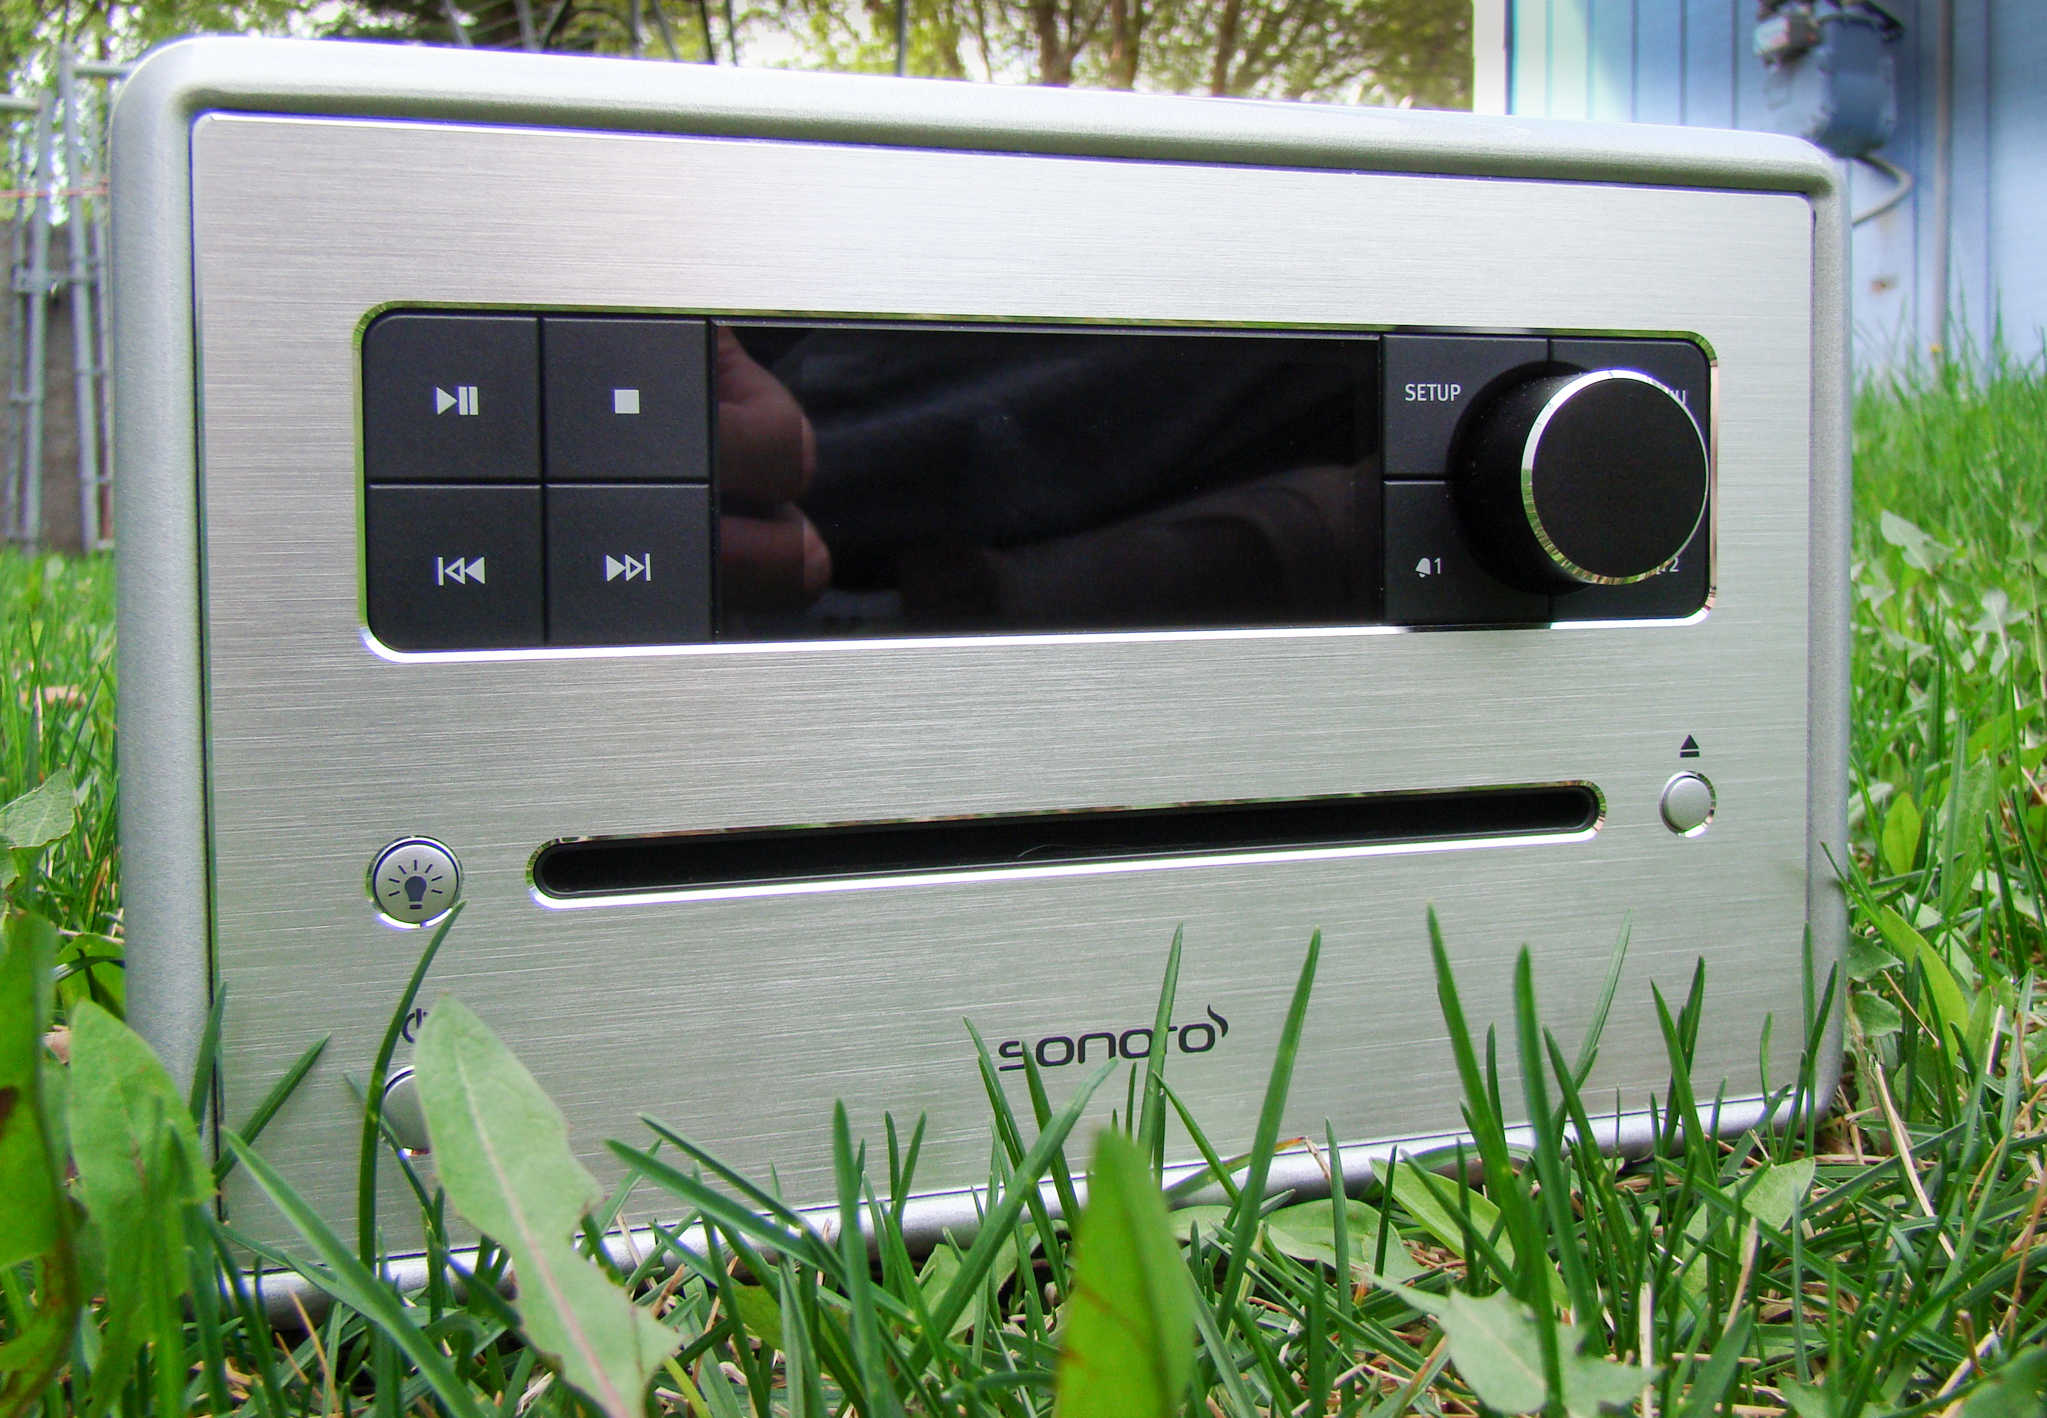 Liberate your languishing CD collection with Sonoro's Cubo.